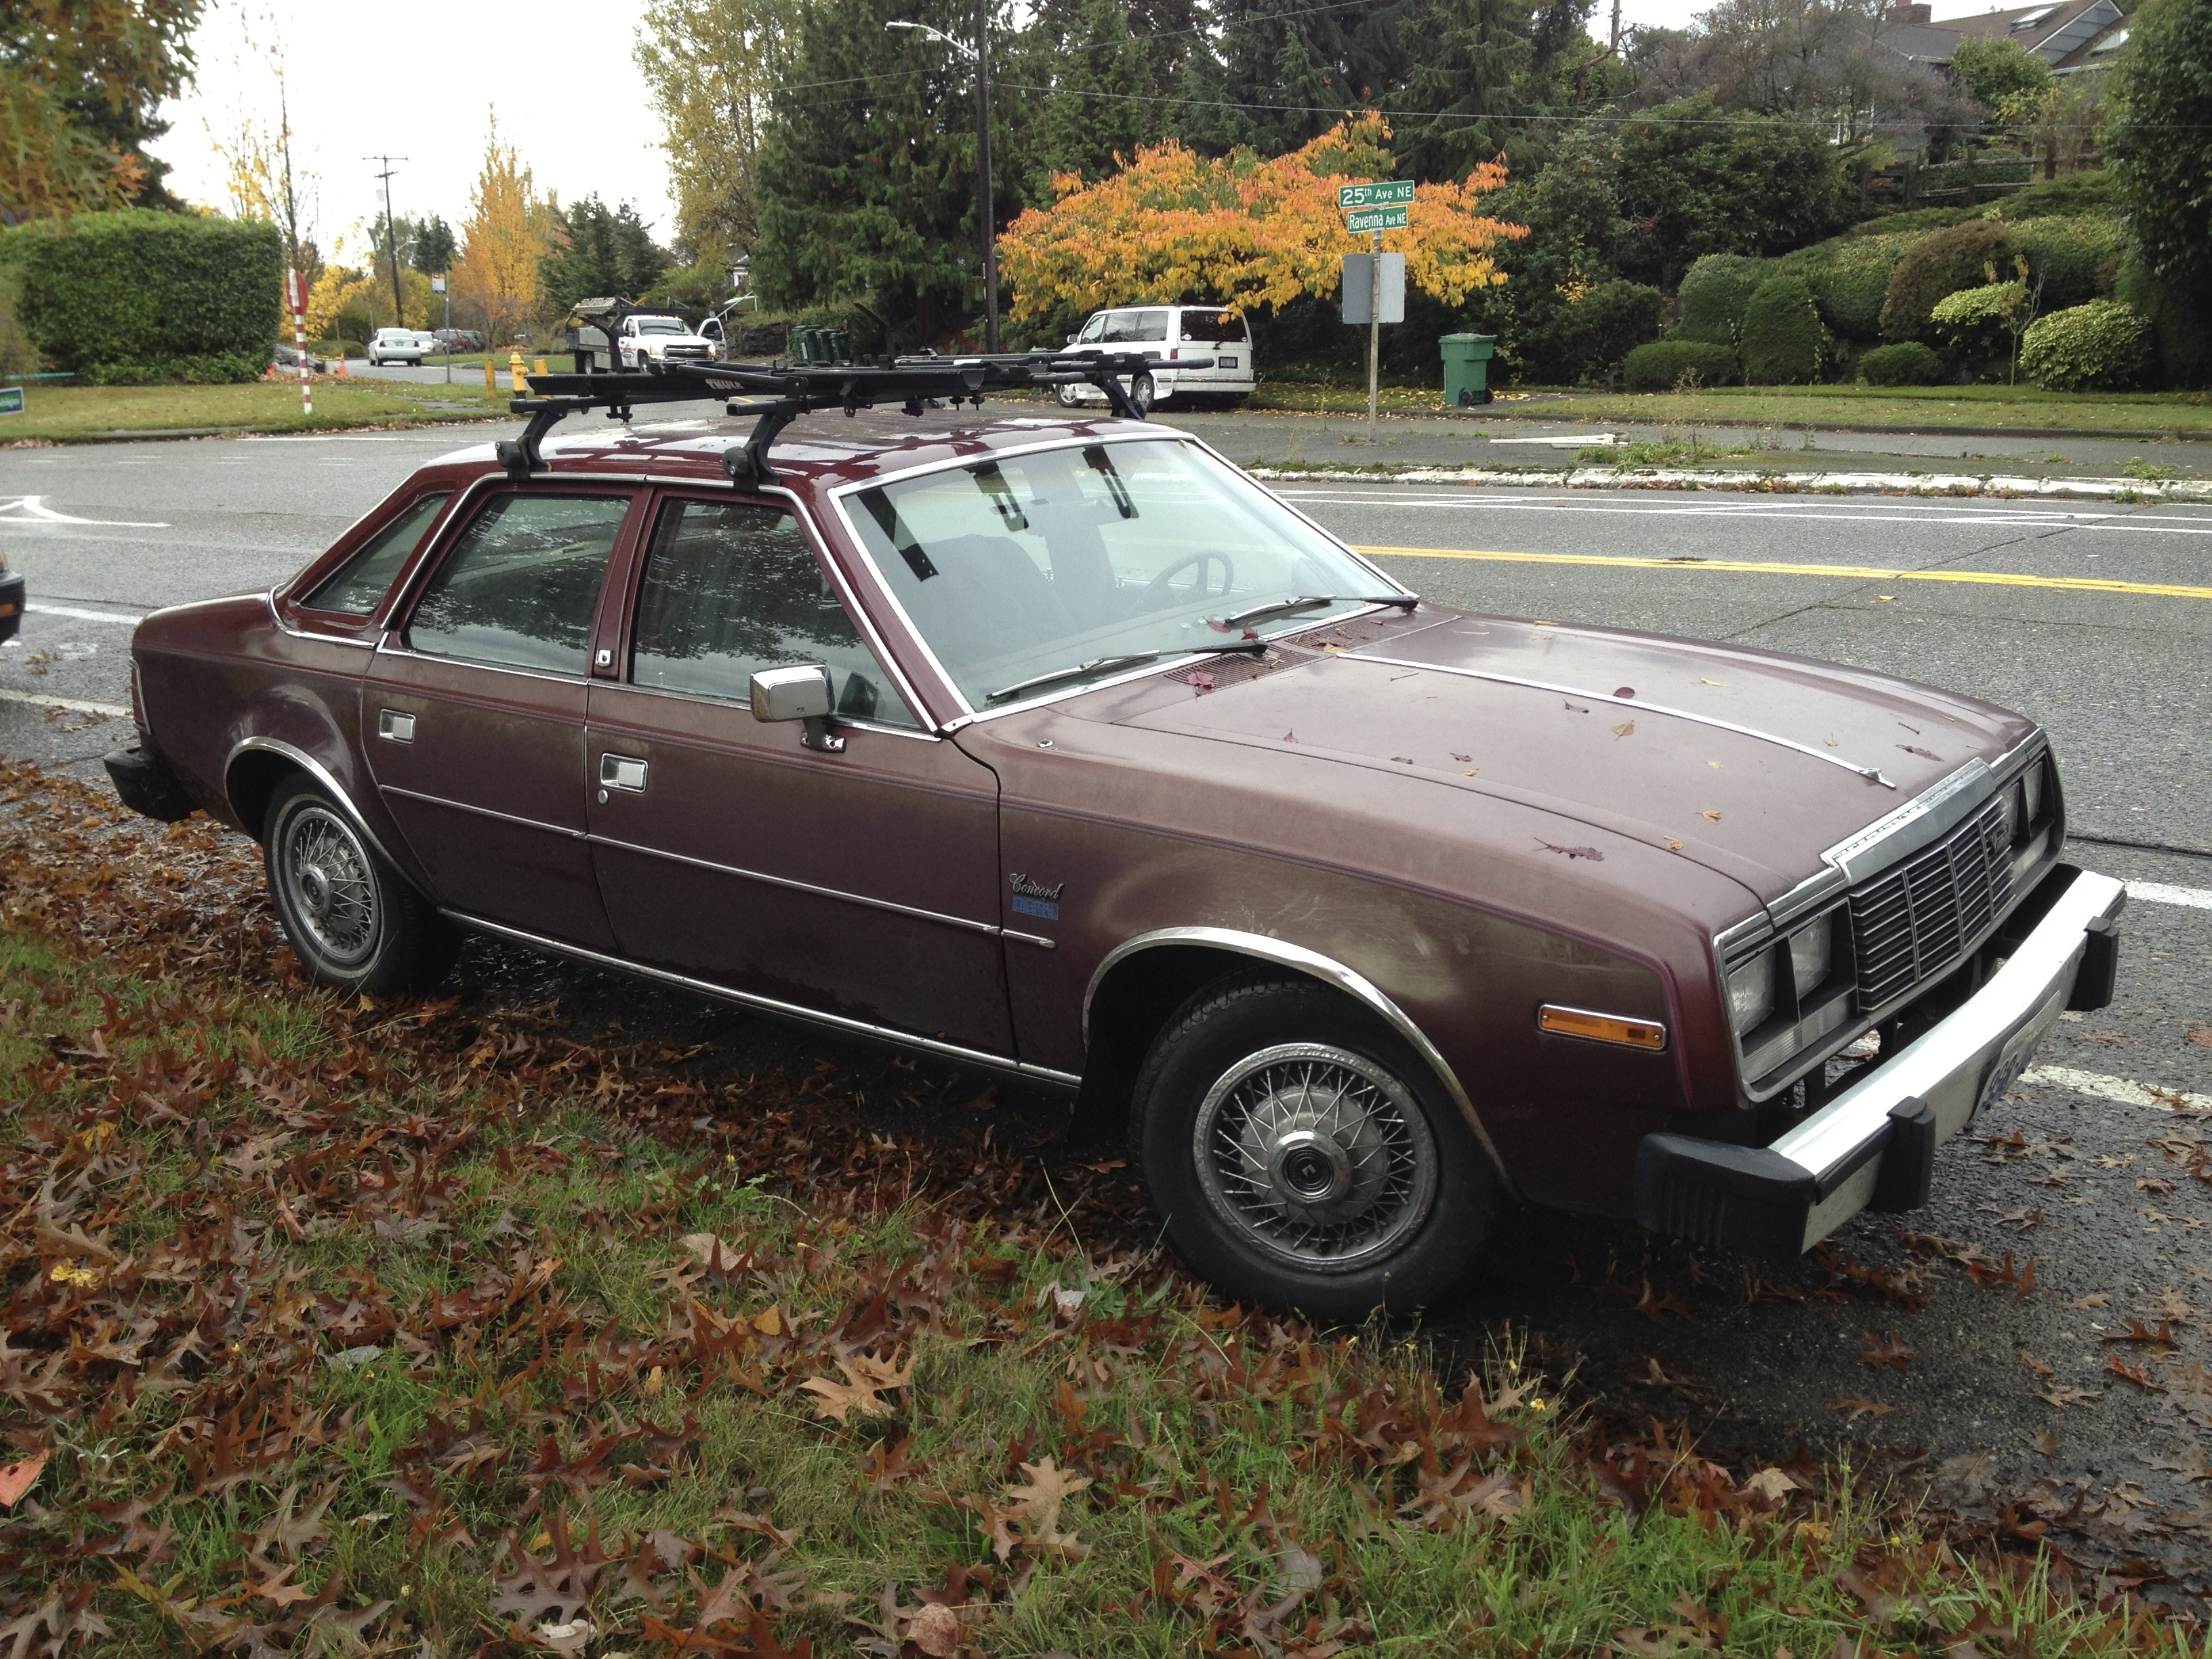 Street Parked: Early 80s AMC Concord